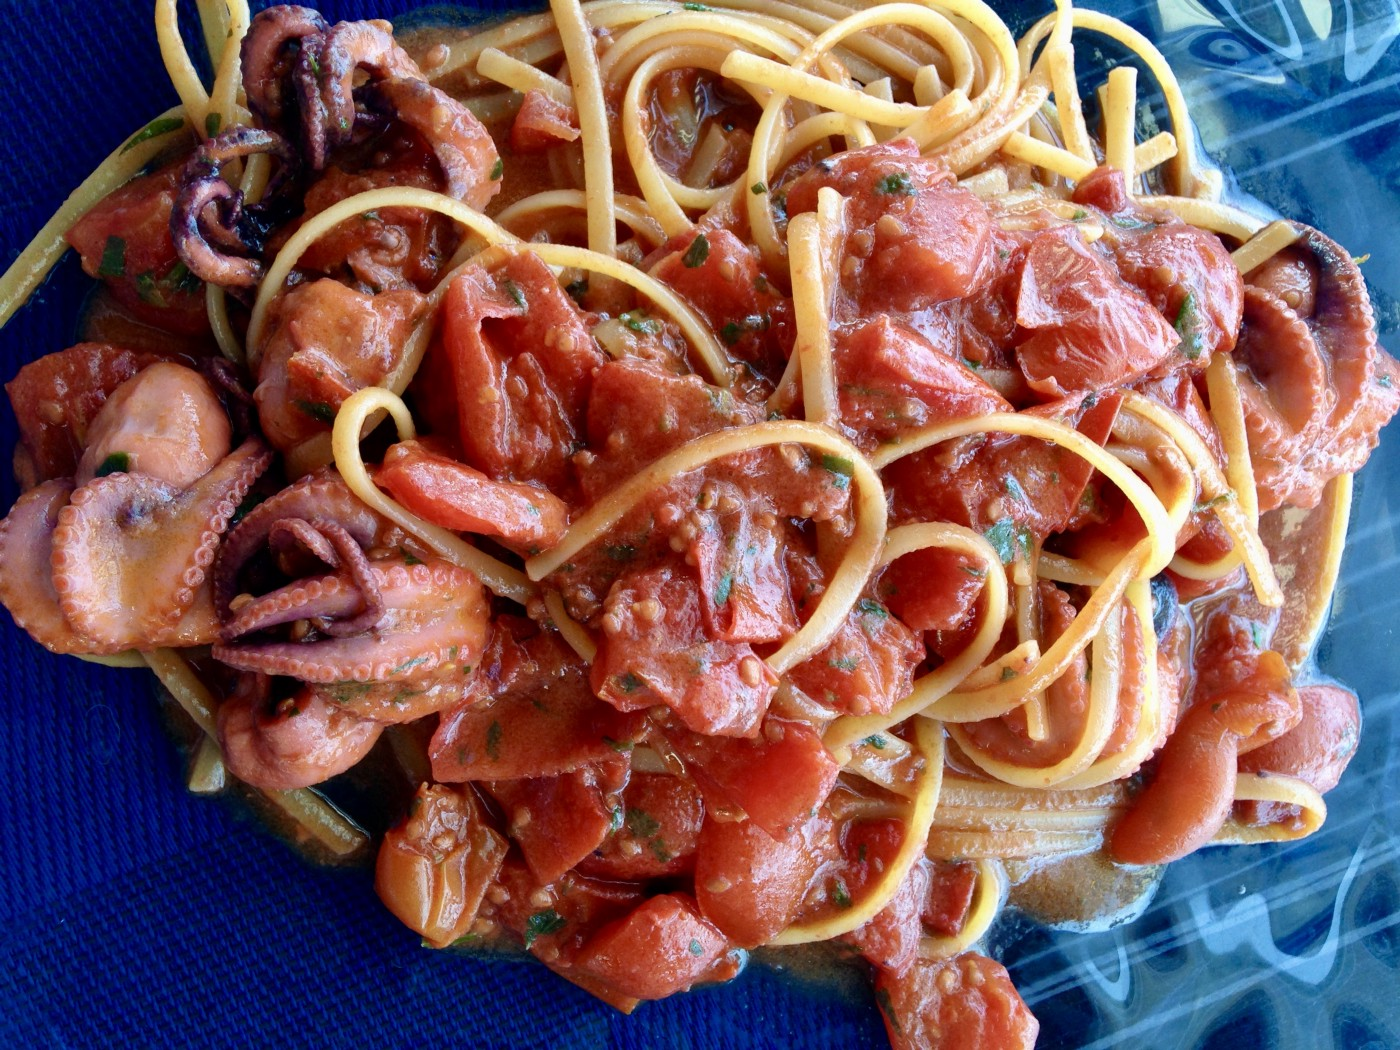 Pasta with octopus and tomatoes. Photo by Francesca Di Meglio